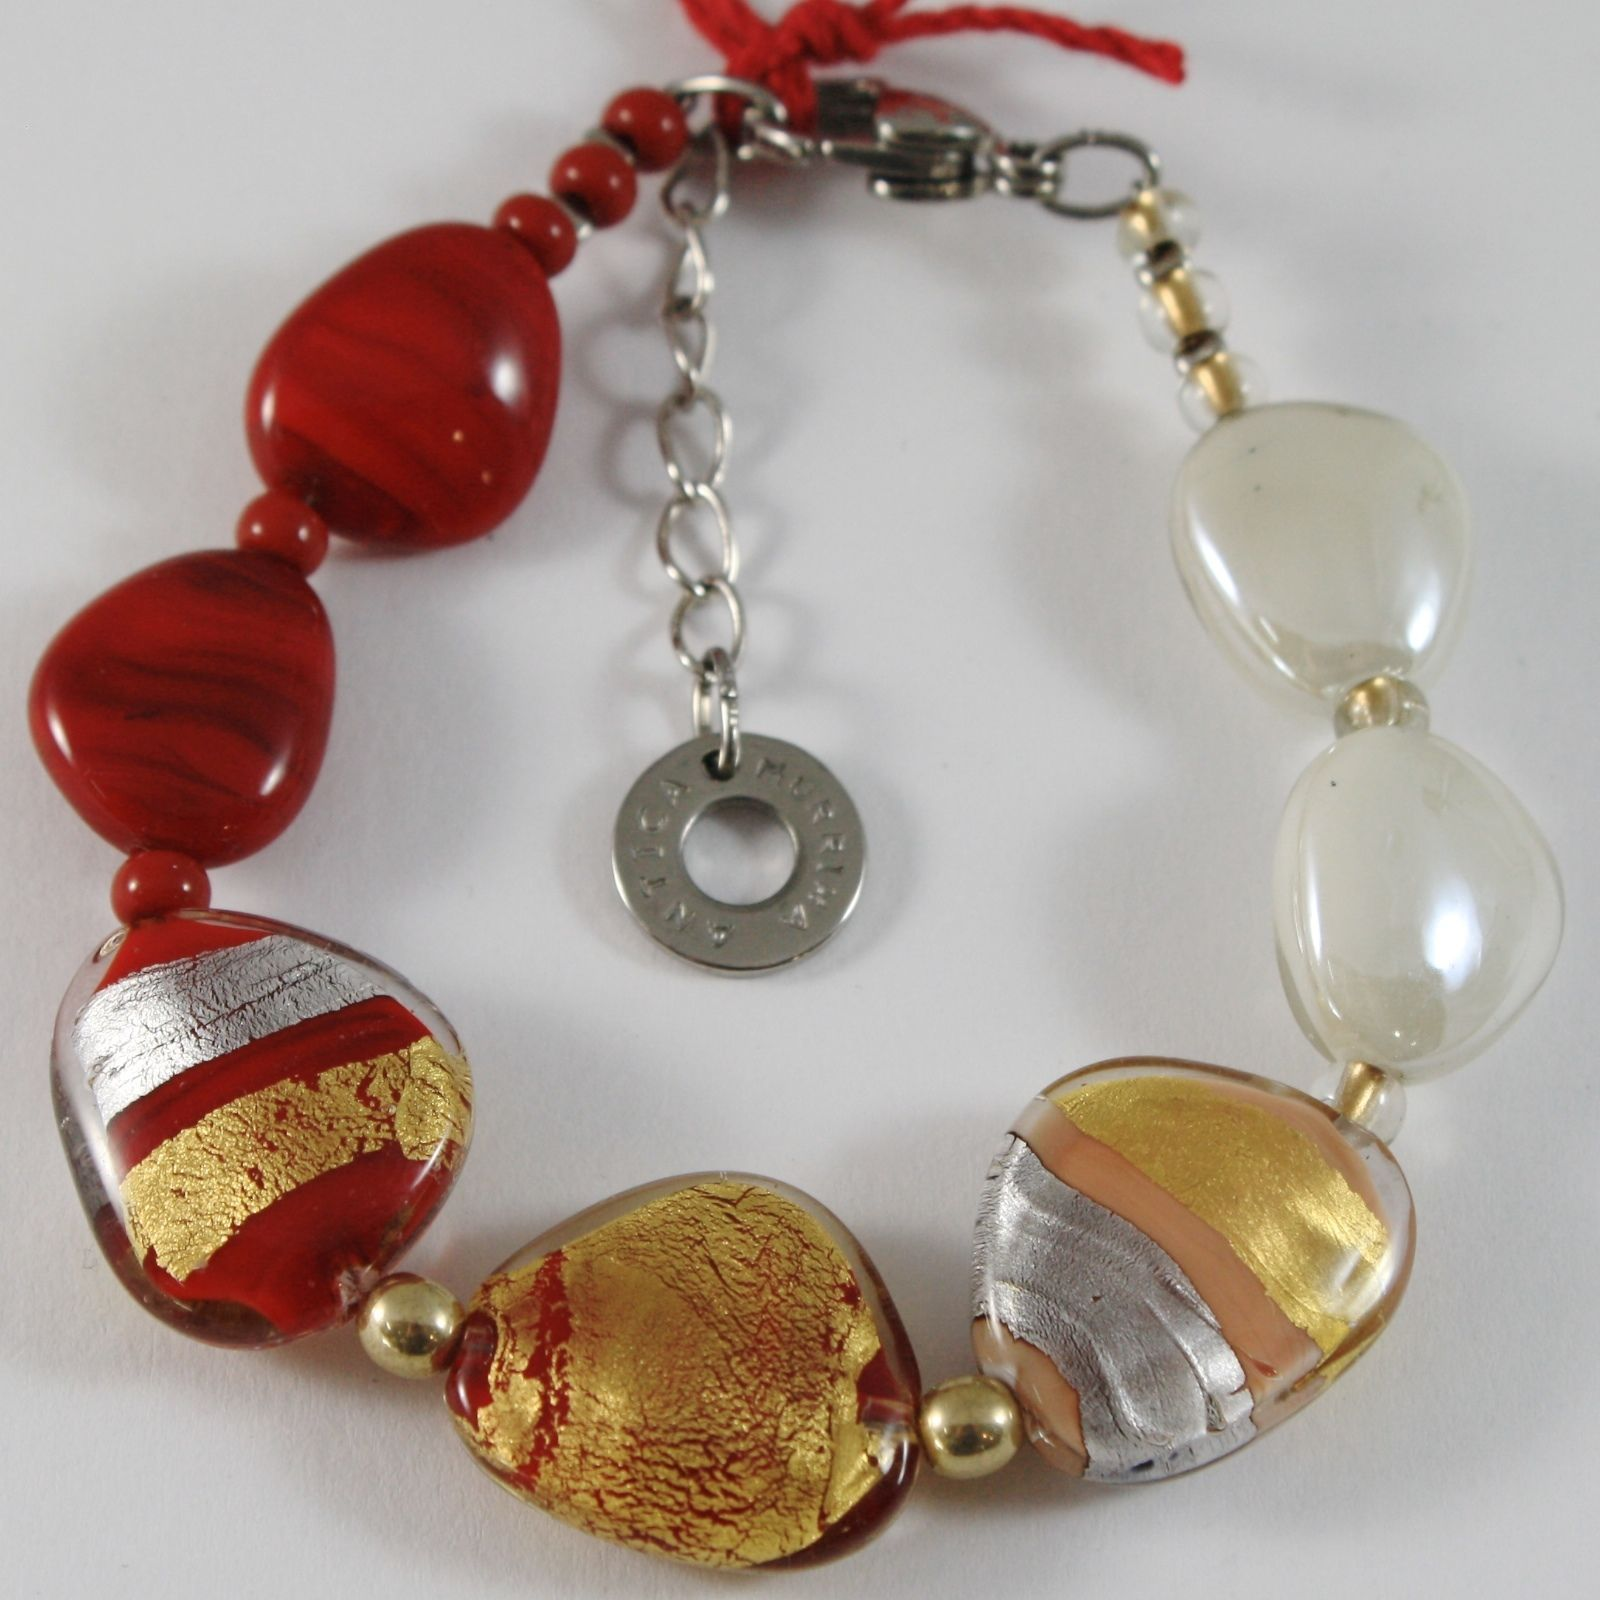 ANTICA MURRINA VENEZIA STRIPED BRACELET, RED, WHITE, BROWN AND GOLD FLAT DROPS